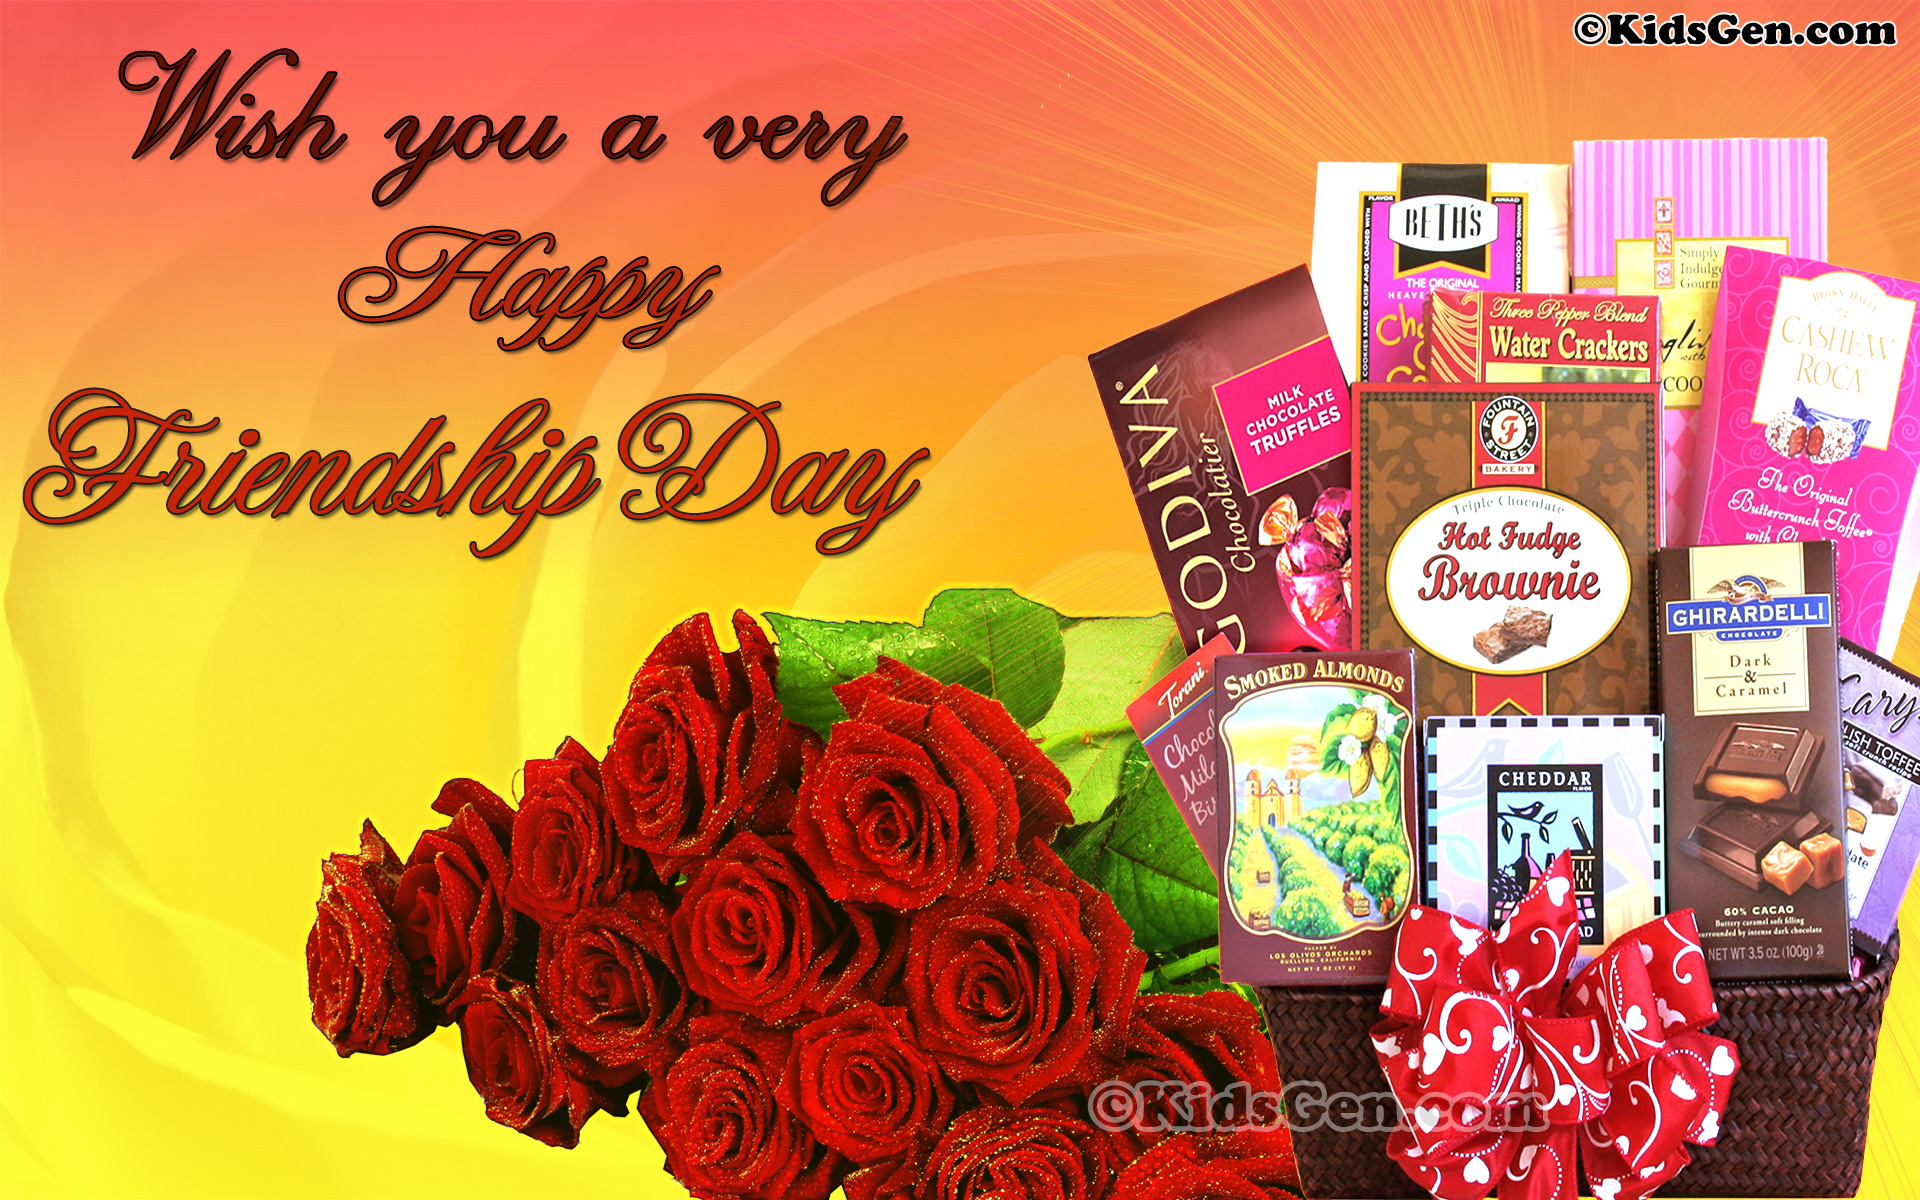 A wonderful high quality wallpaper featuring gifts for friendship day.